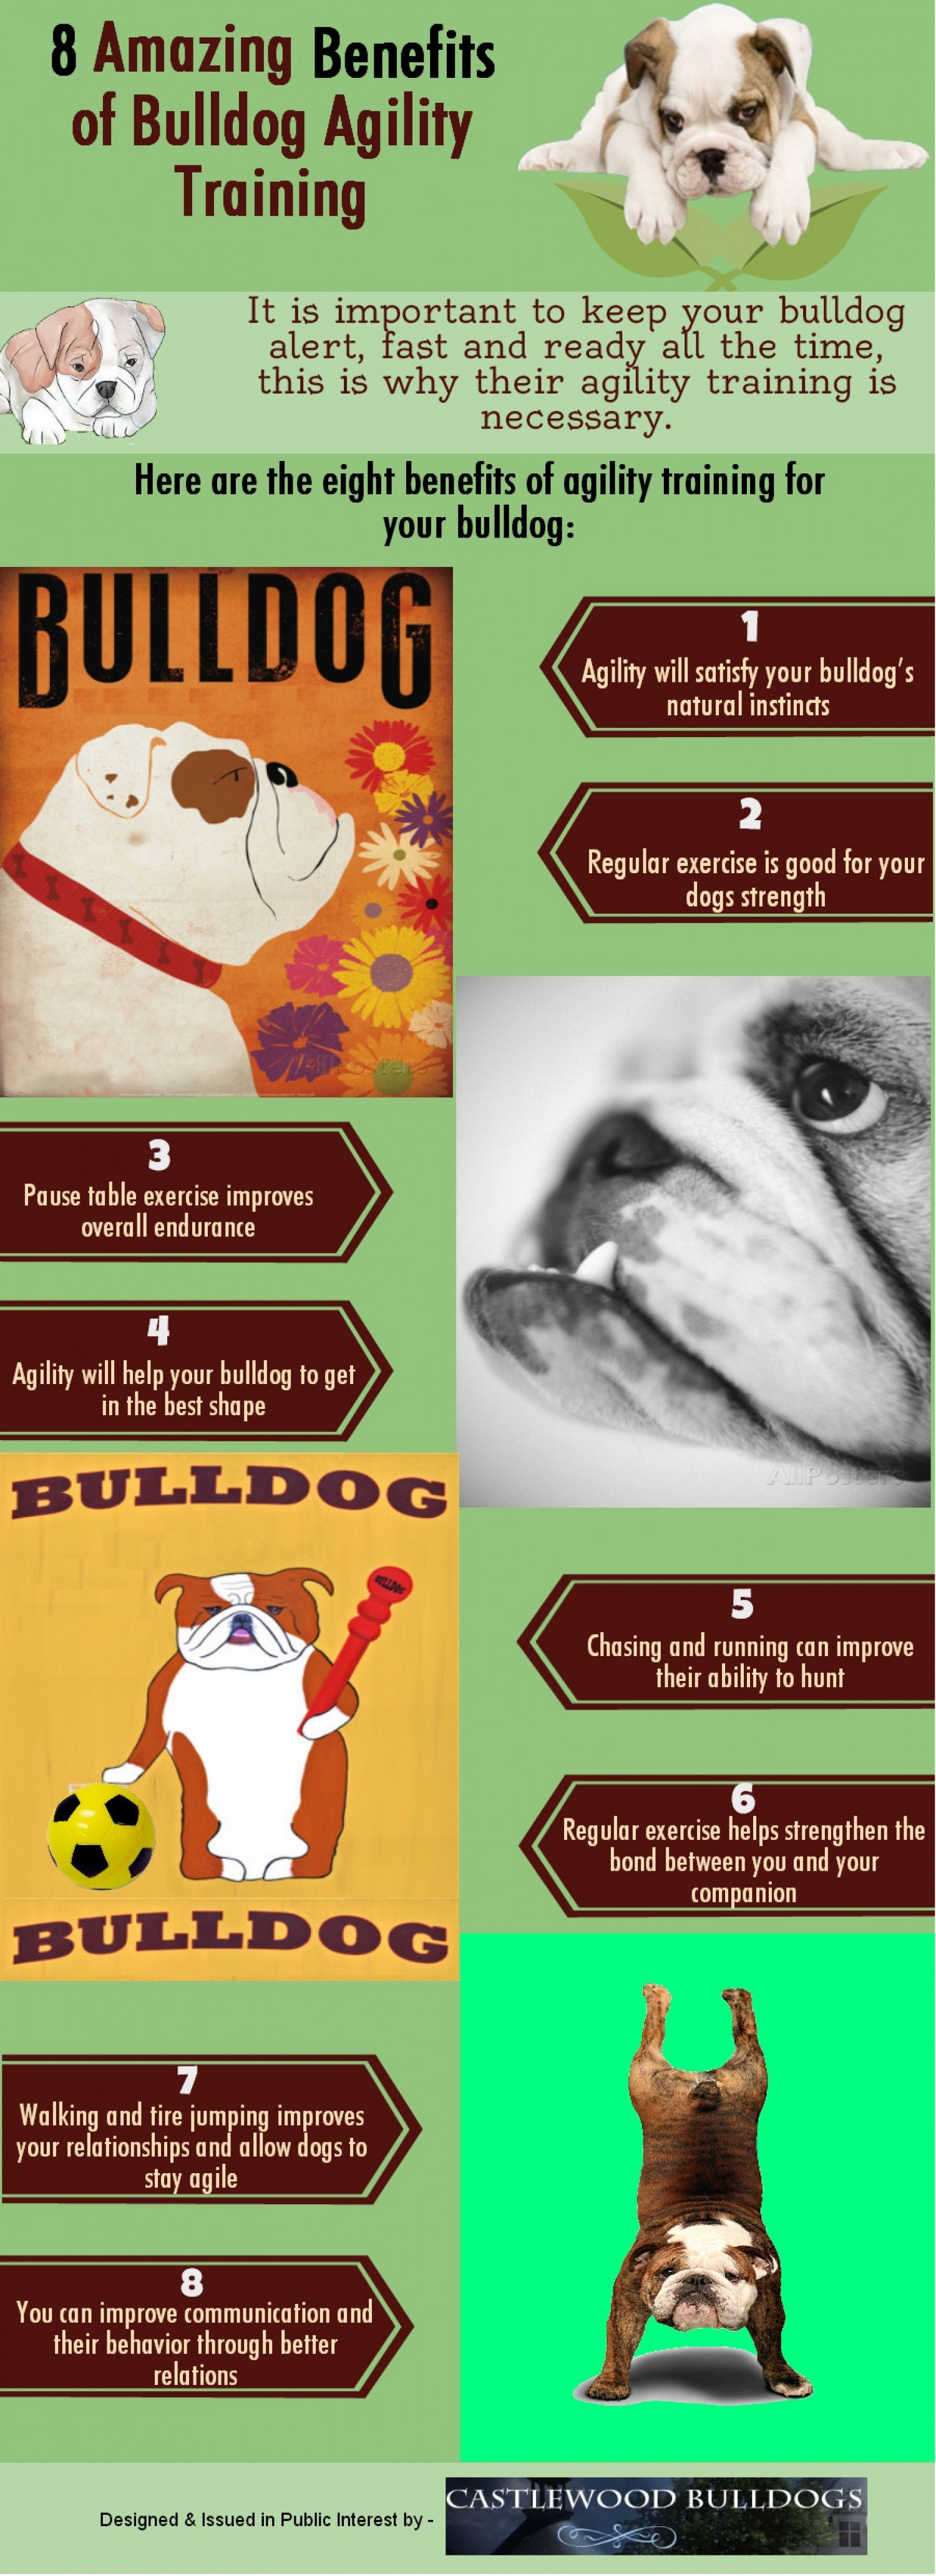 8 Amazing Benefits of Bulldog Agility Training Infographic